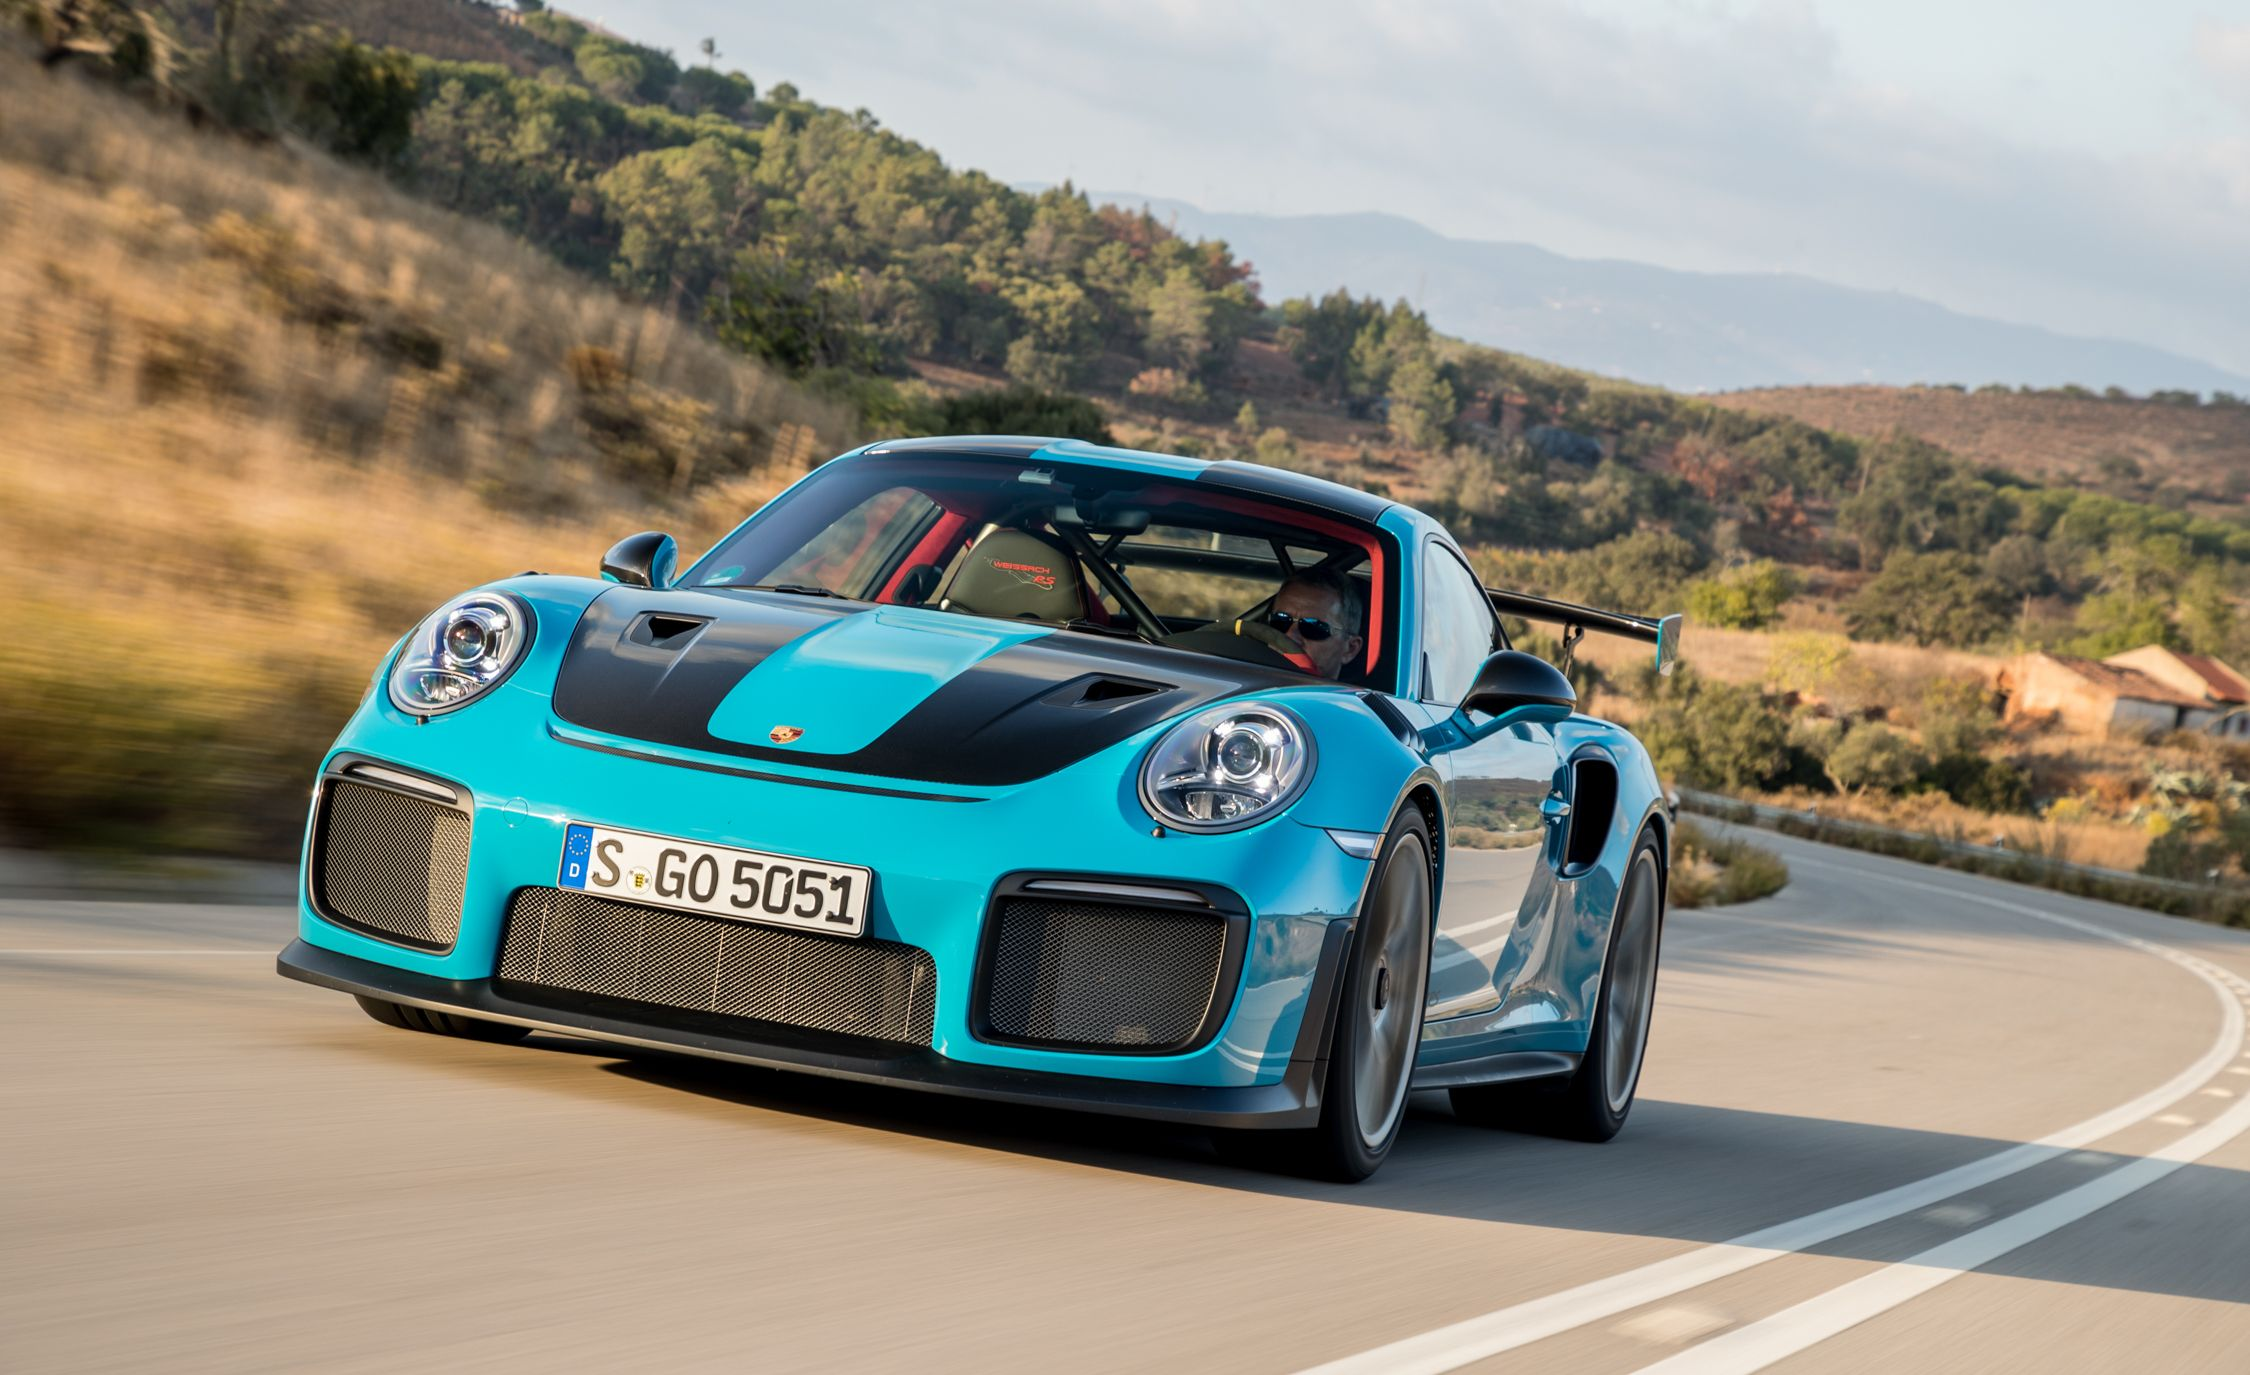 2018-PORSCHE-911-GT2-RS-101 Extraordinary Porsche 911 Gt2 Rs Used Cars Trend